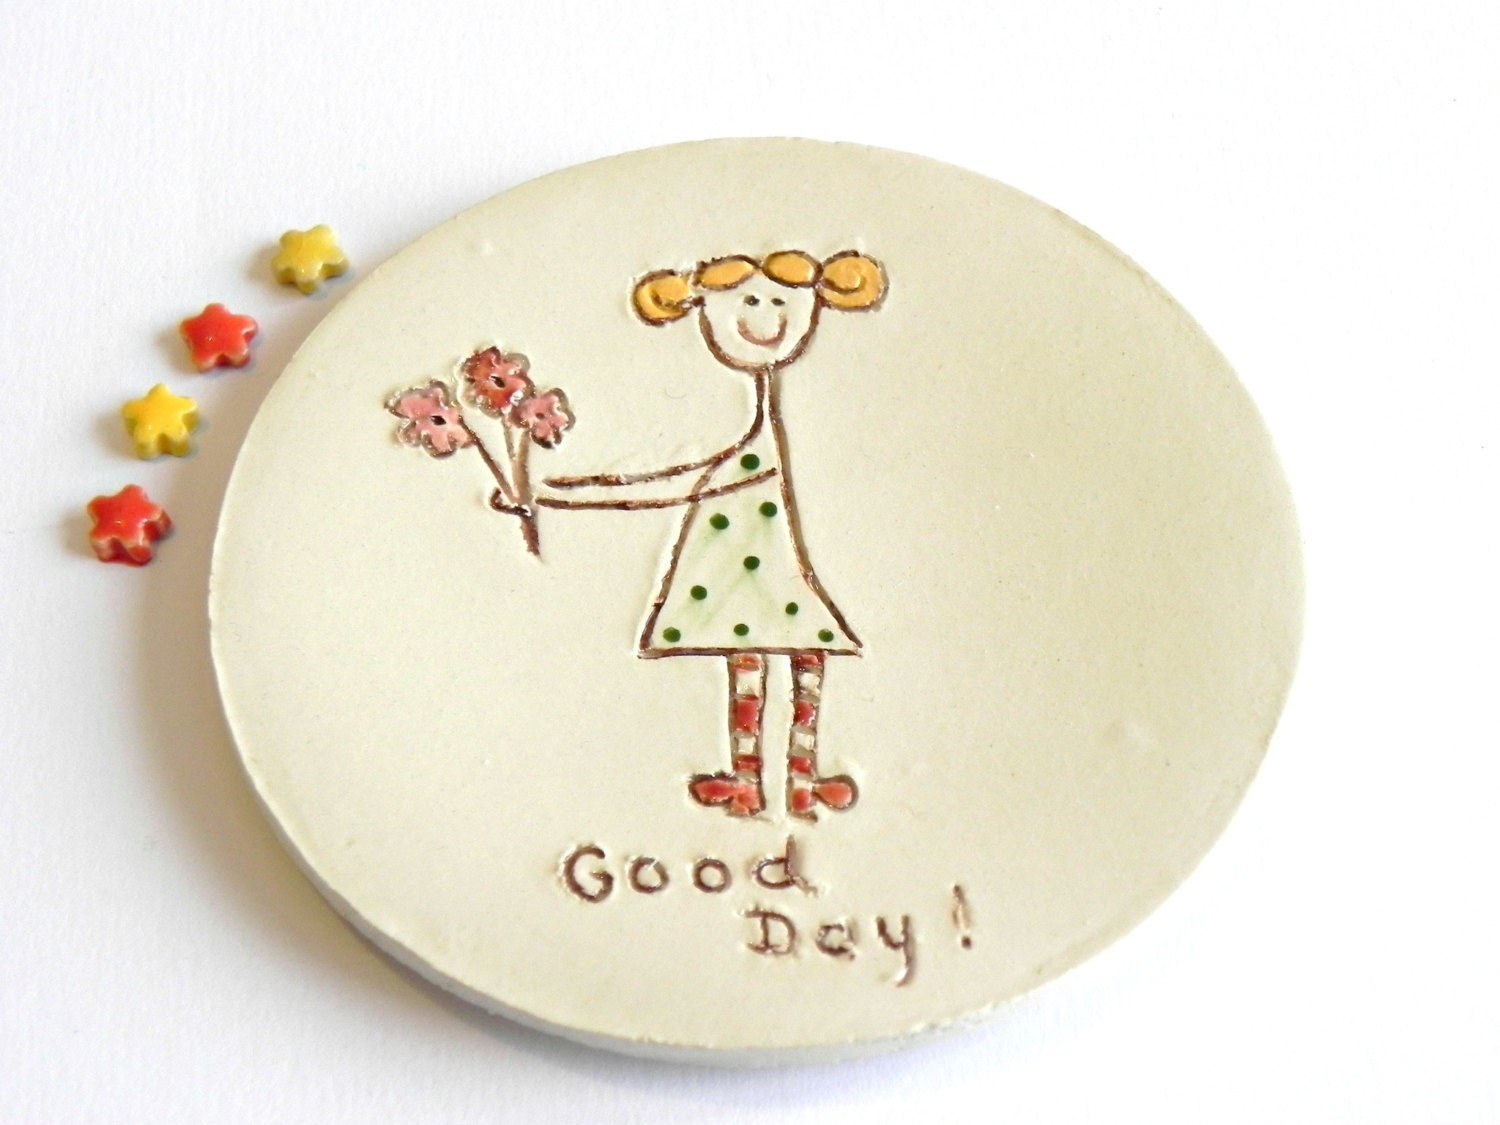 Ceramic Ring Dish Good Day Plate Blond Girl with Flower Polka Dots OOAK Candle Holder - Ceraminic